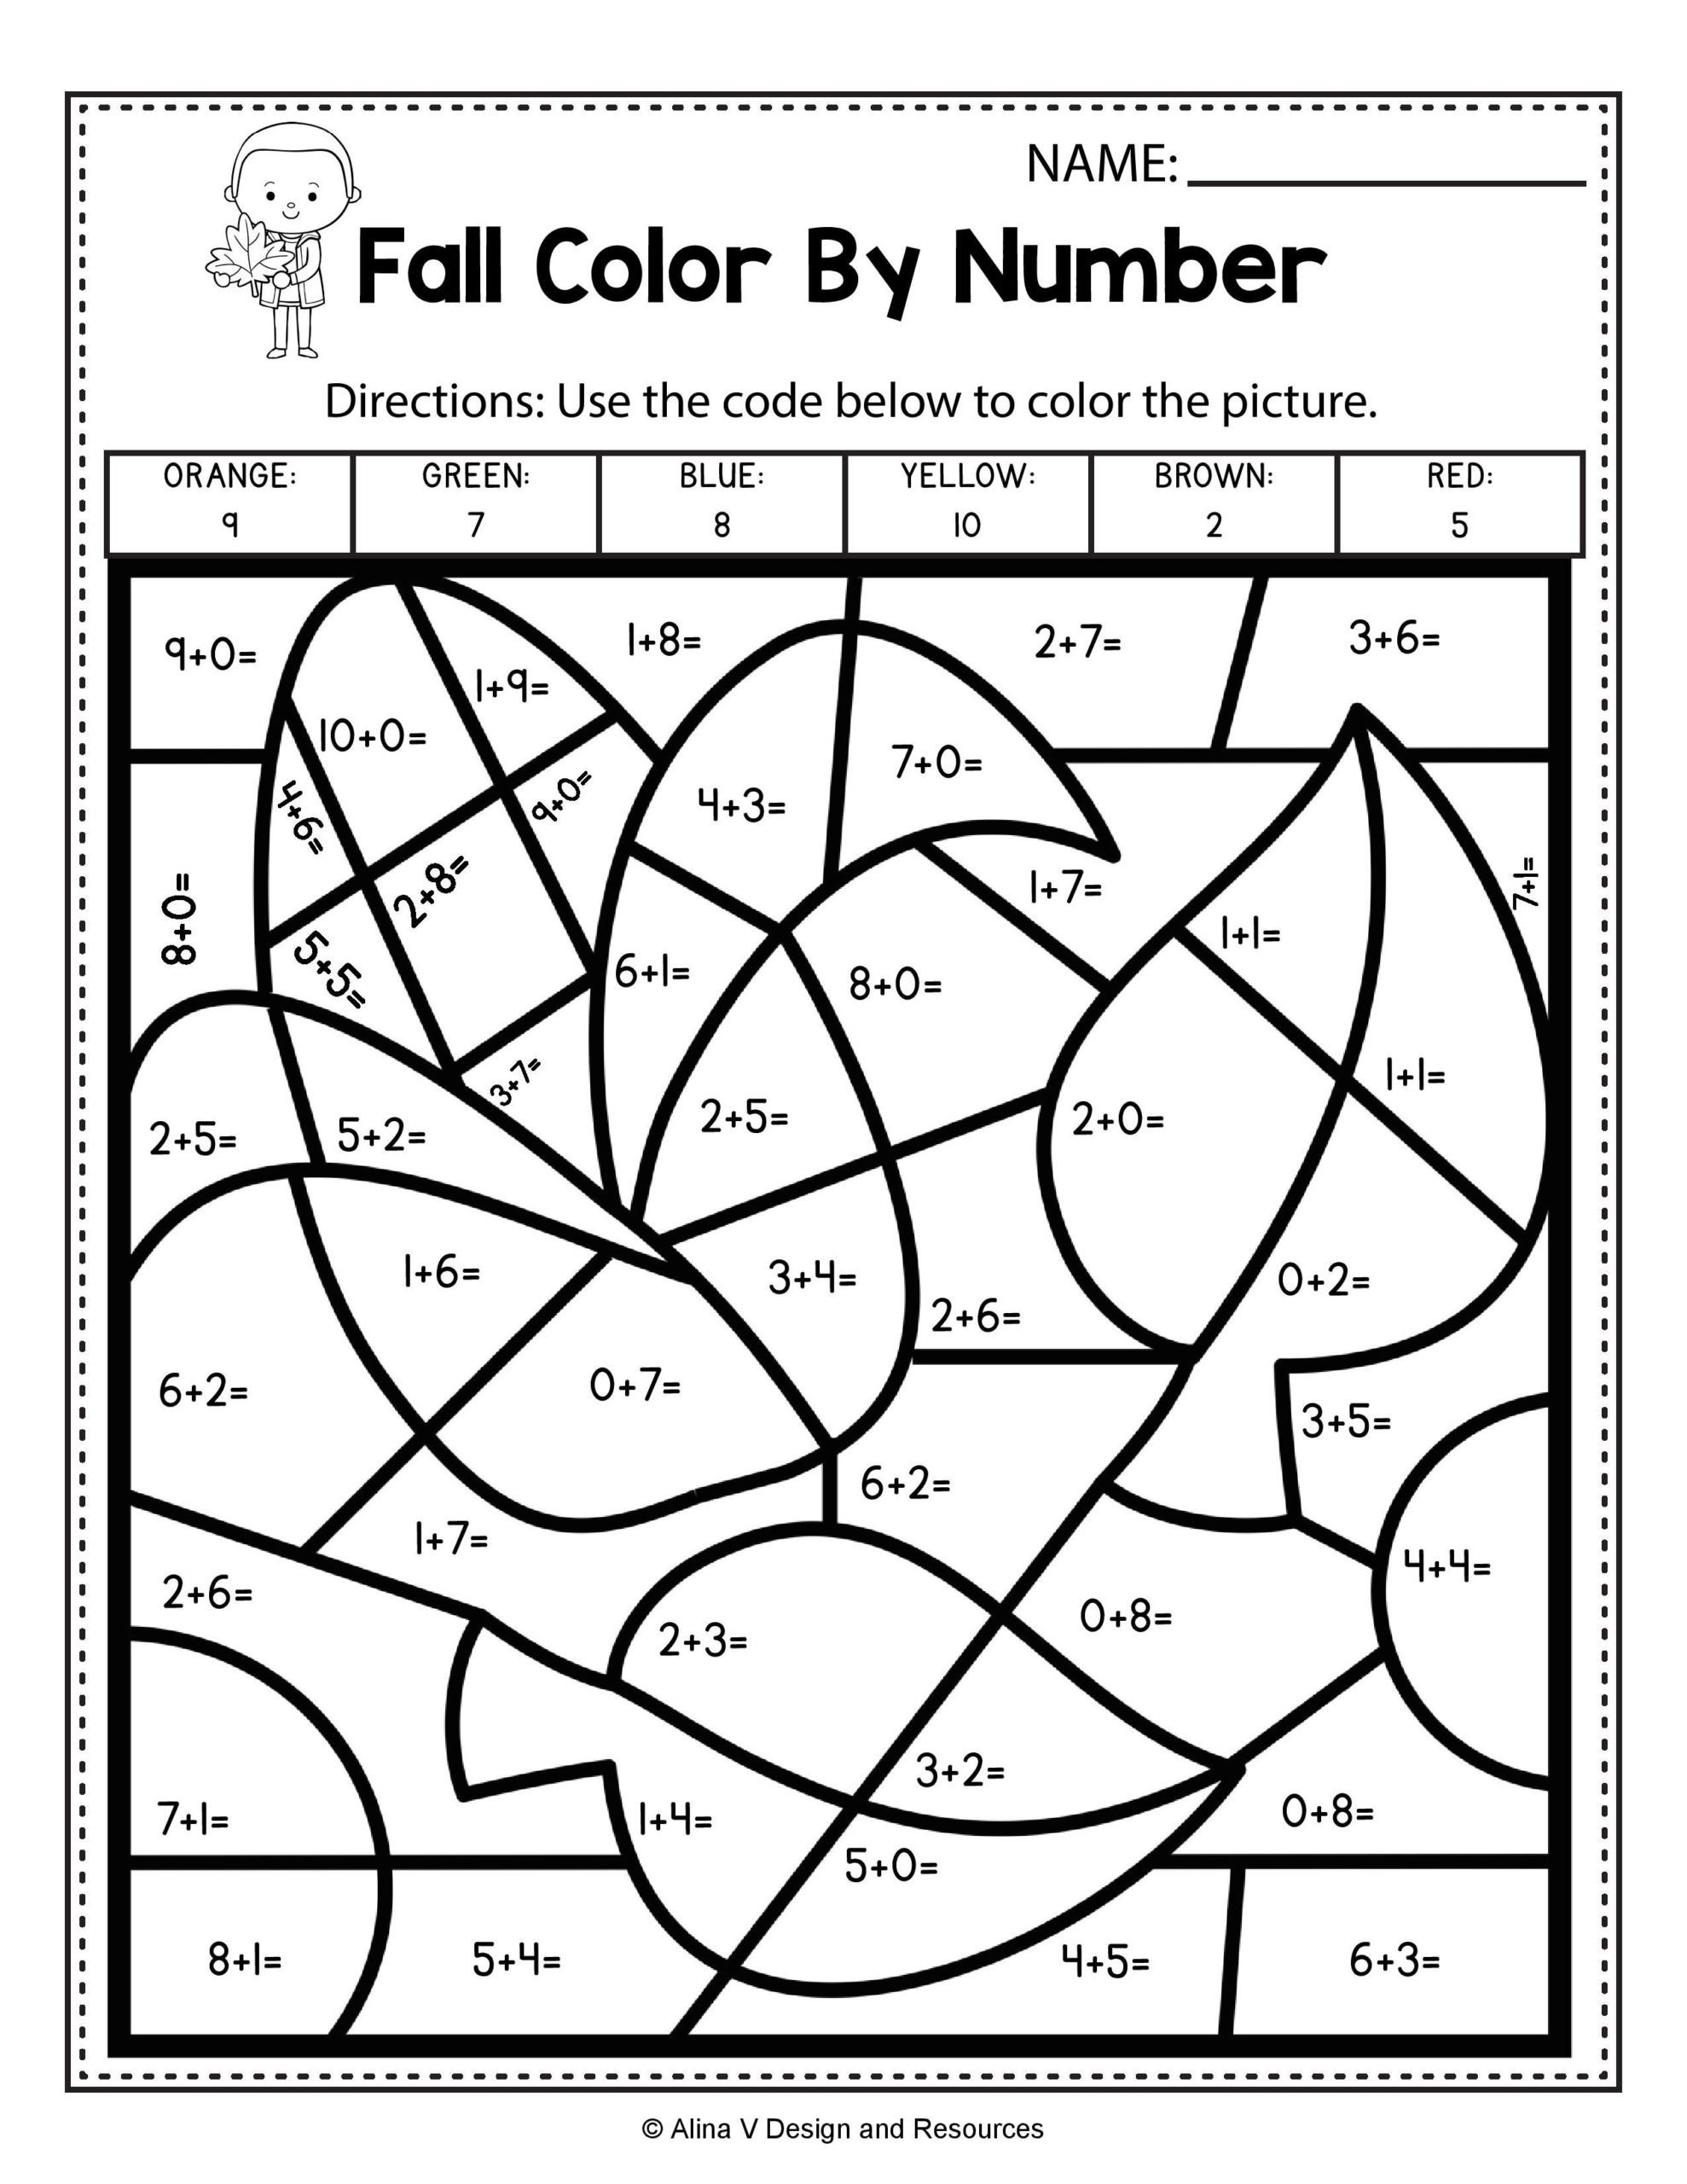 Color by Number Equations Worksheets Math Worksheet Simple Addition Color by Number Fall Math